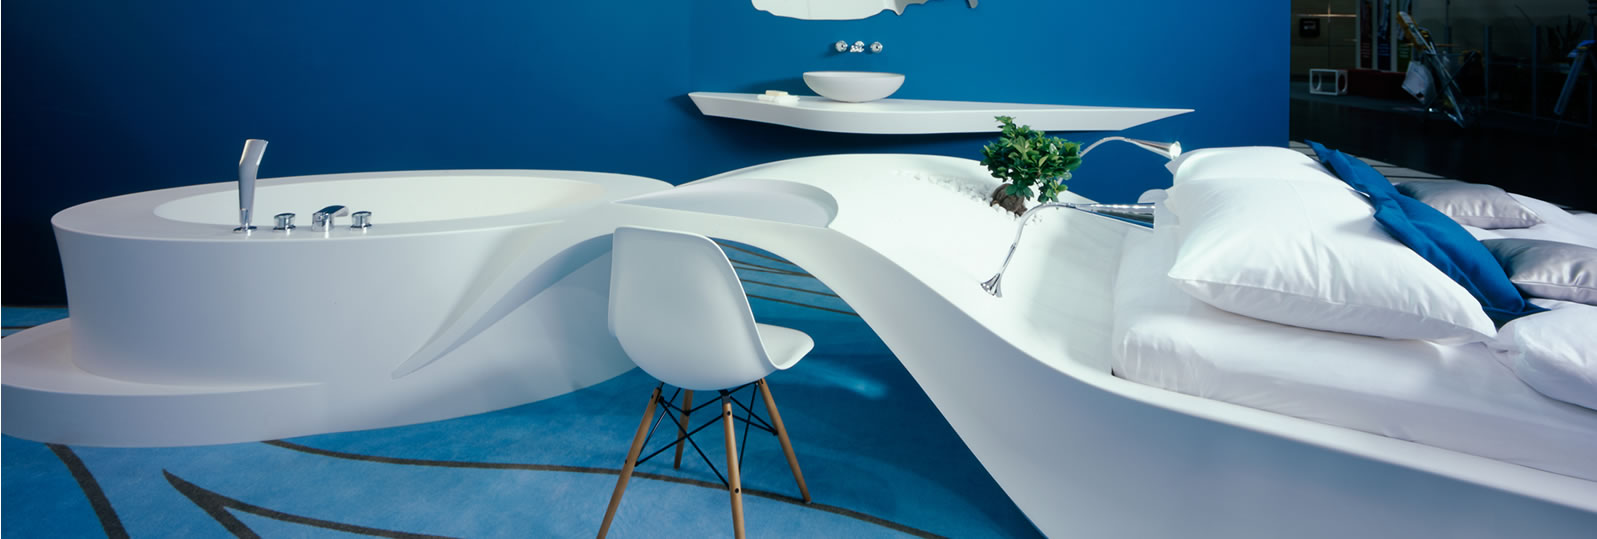 Deeley fabrications - Corian manufacturer Milton Keynes | Corian Quality Network Partner and Hi-Macs Quality Club members